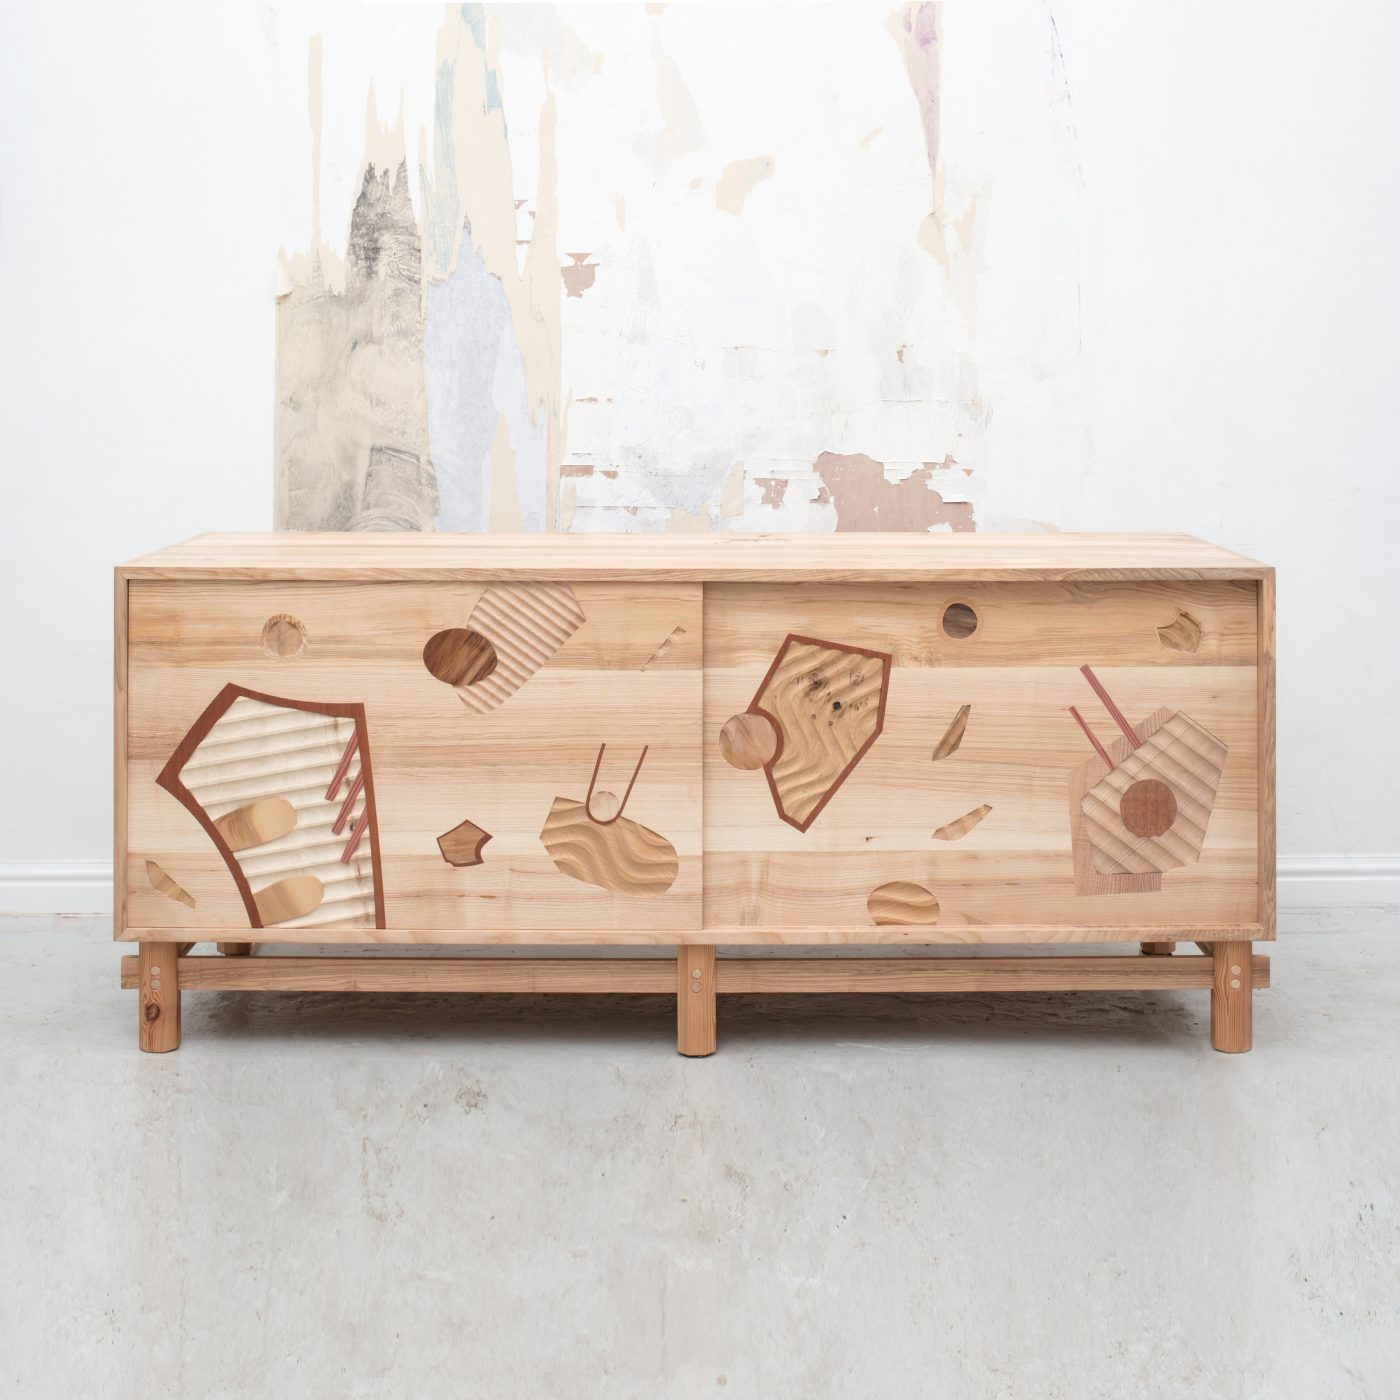 Jan Hendzel Studio bowater side cabinet